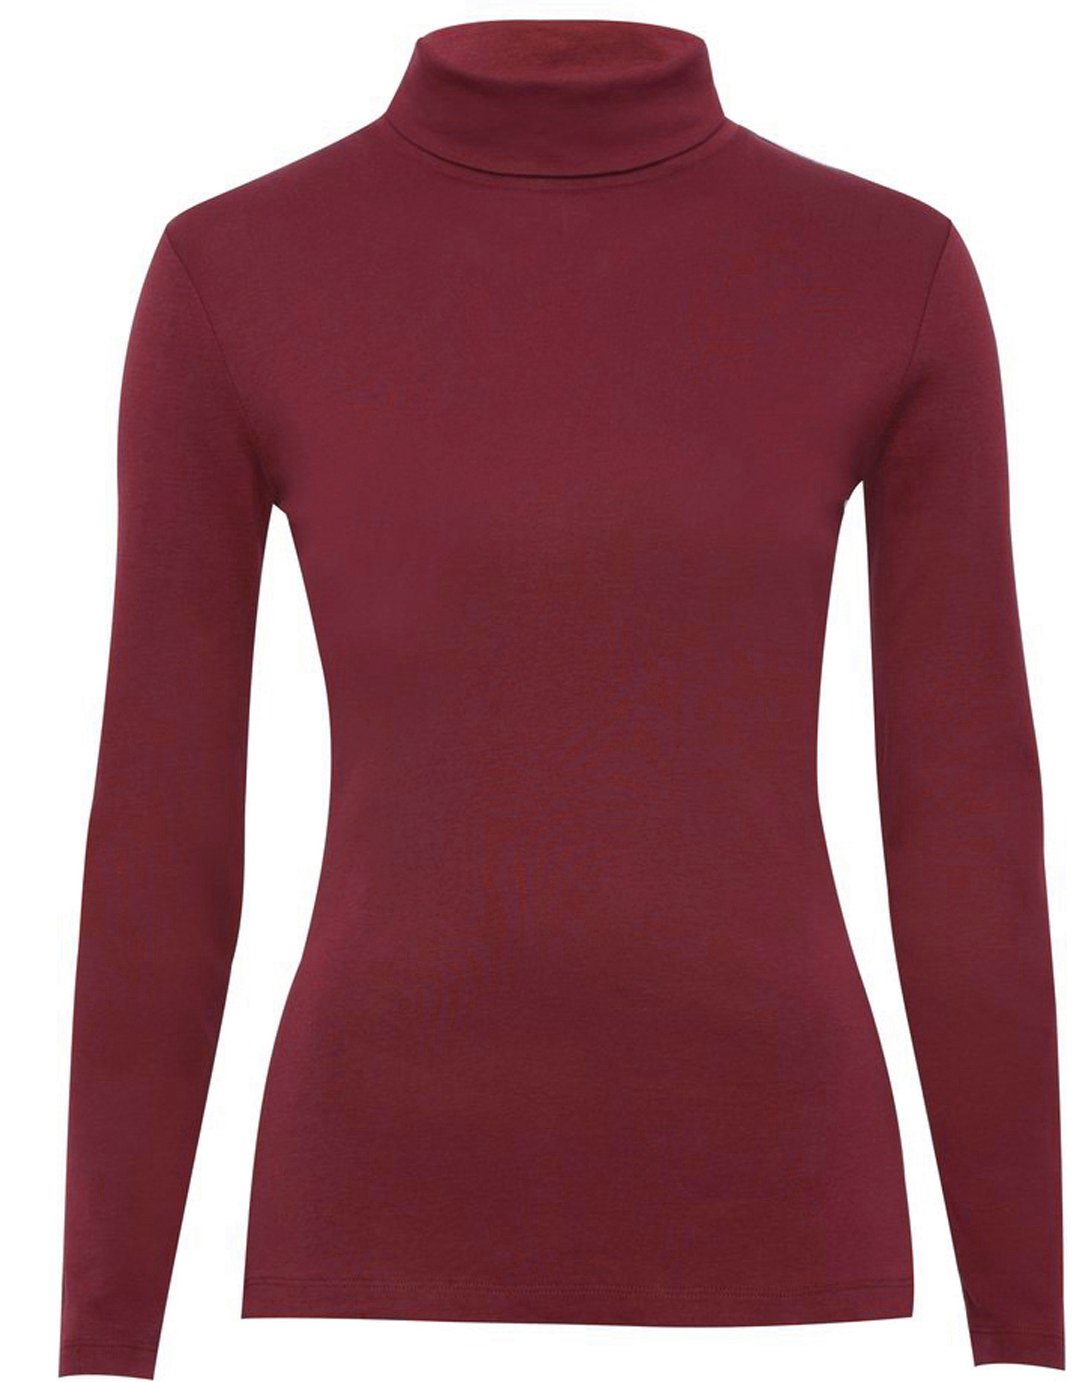 GUBA Big Girls' Long Sleeve Turtle Polo Neck Top High Roll Neck Top Jumper